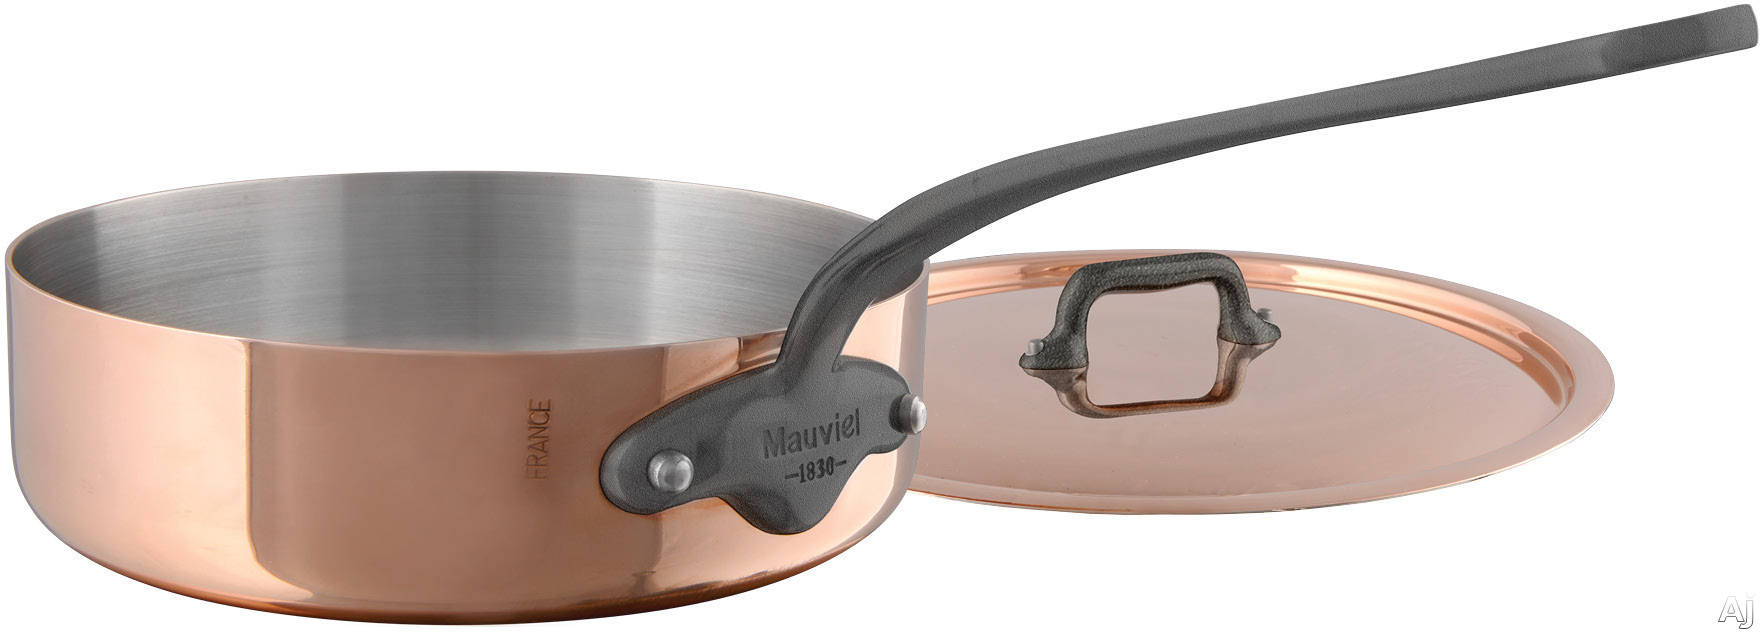 Mauviel 645125 M'150C2 3-1/5 Quart Saute Pan and Lid with Copper Stainless Steel, High Performance and Non-Reactive